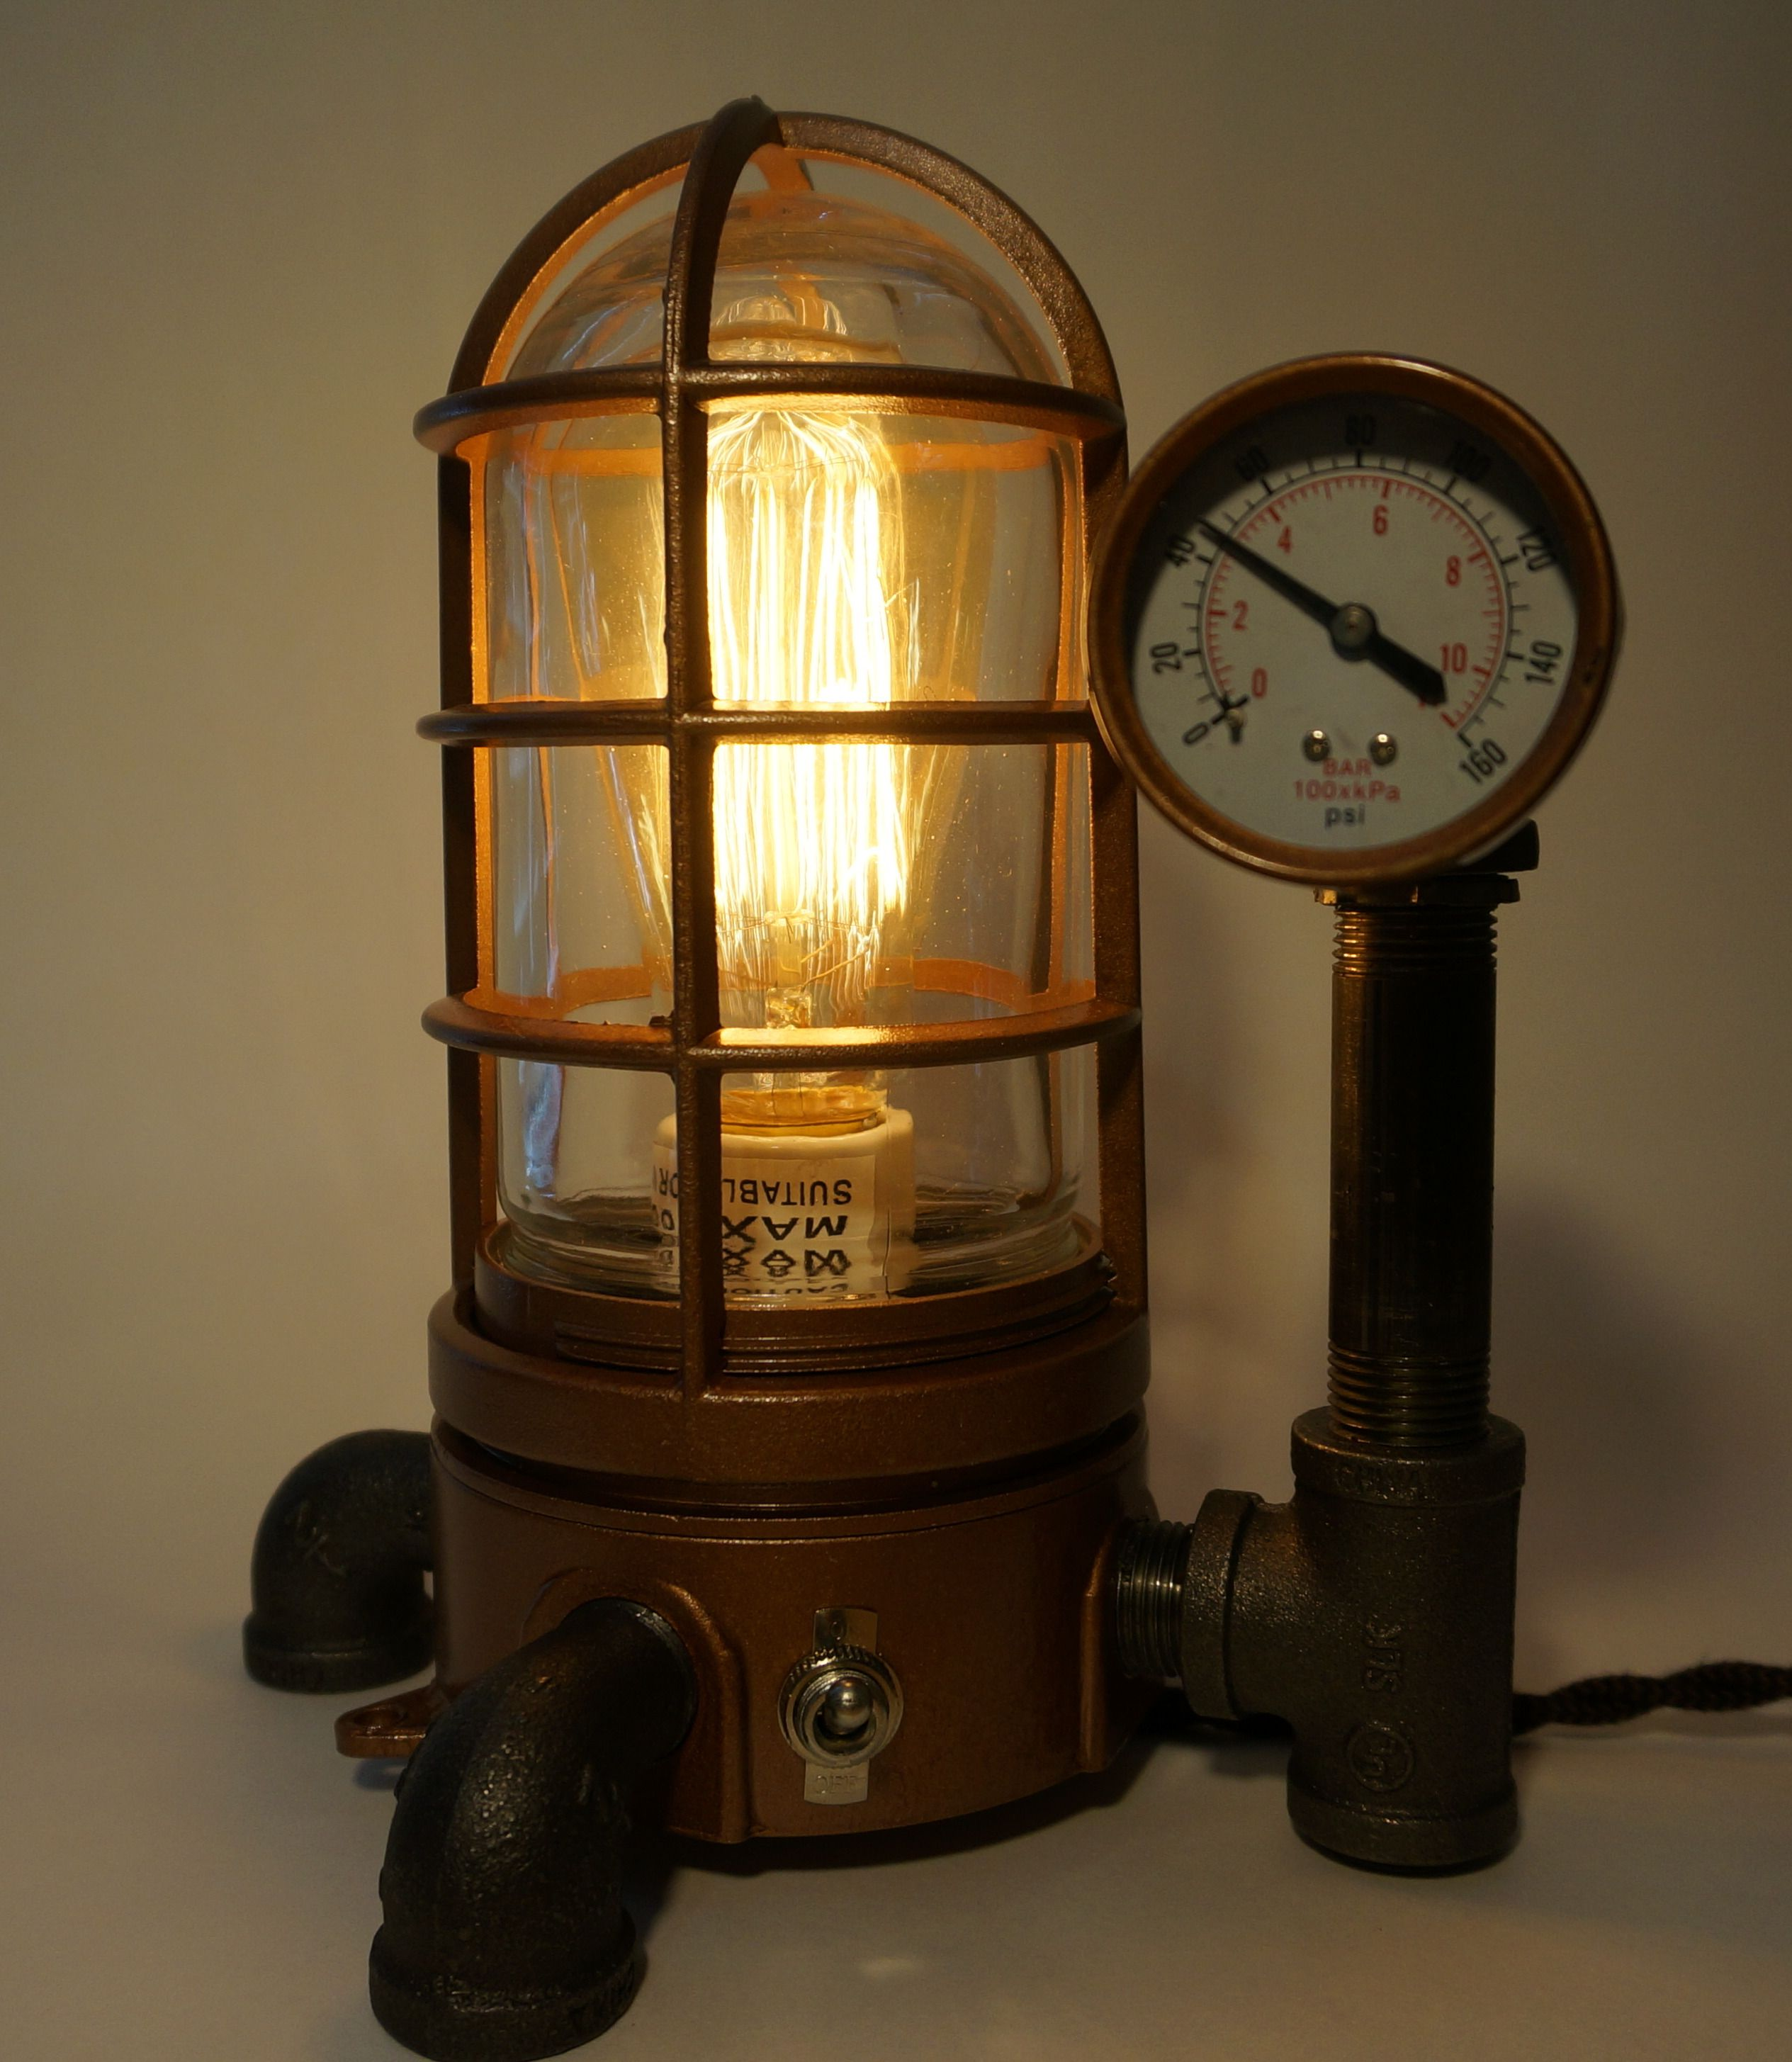 Steampunk Furniture For Sale Steampunk Vapor Proof Desk Lamp 43 Steamlit Steampunk